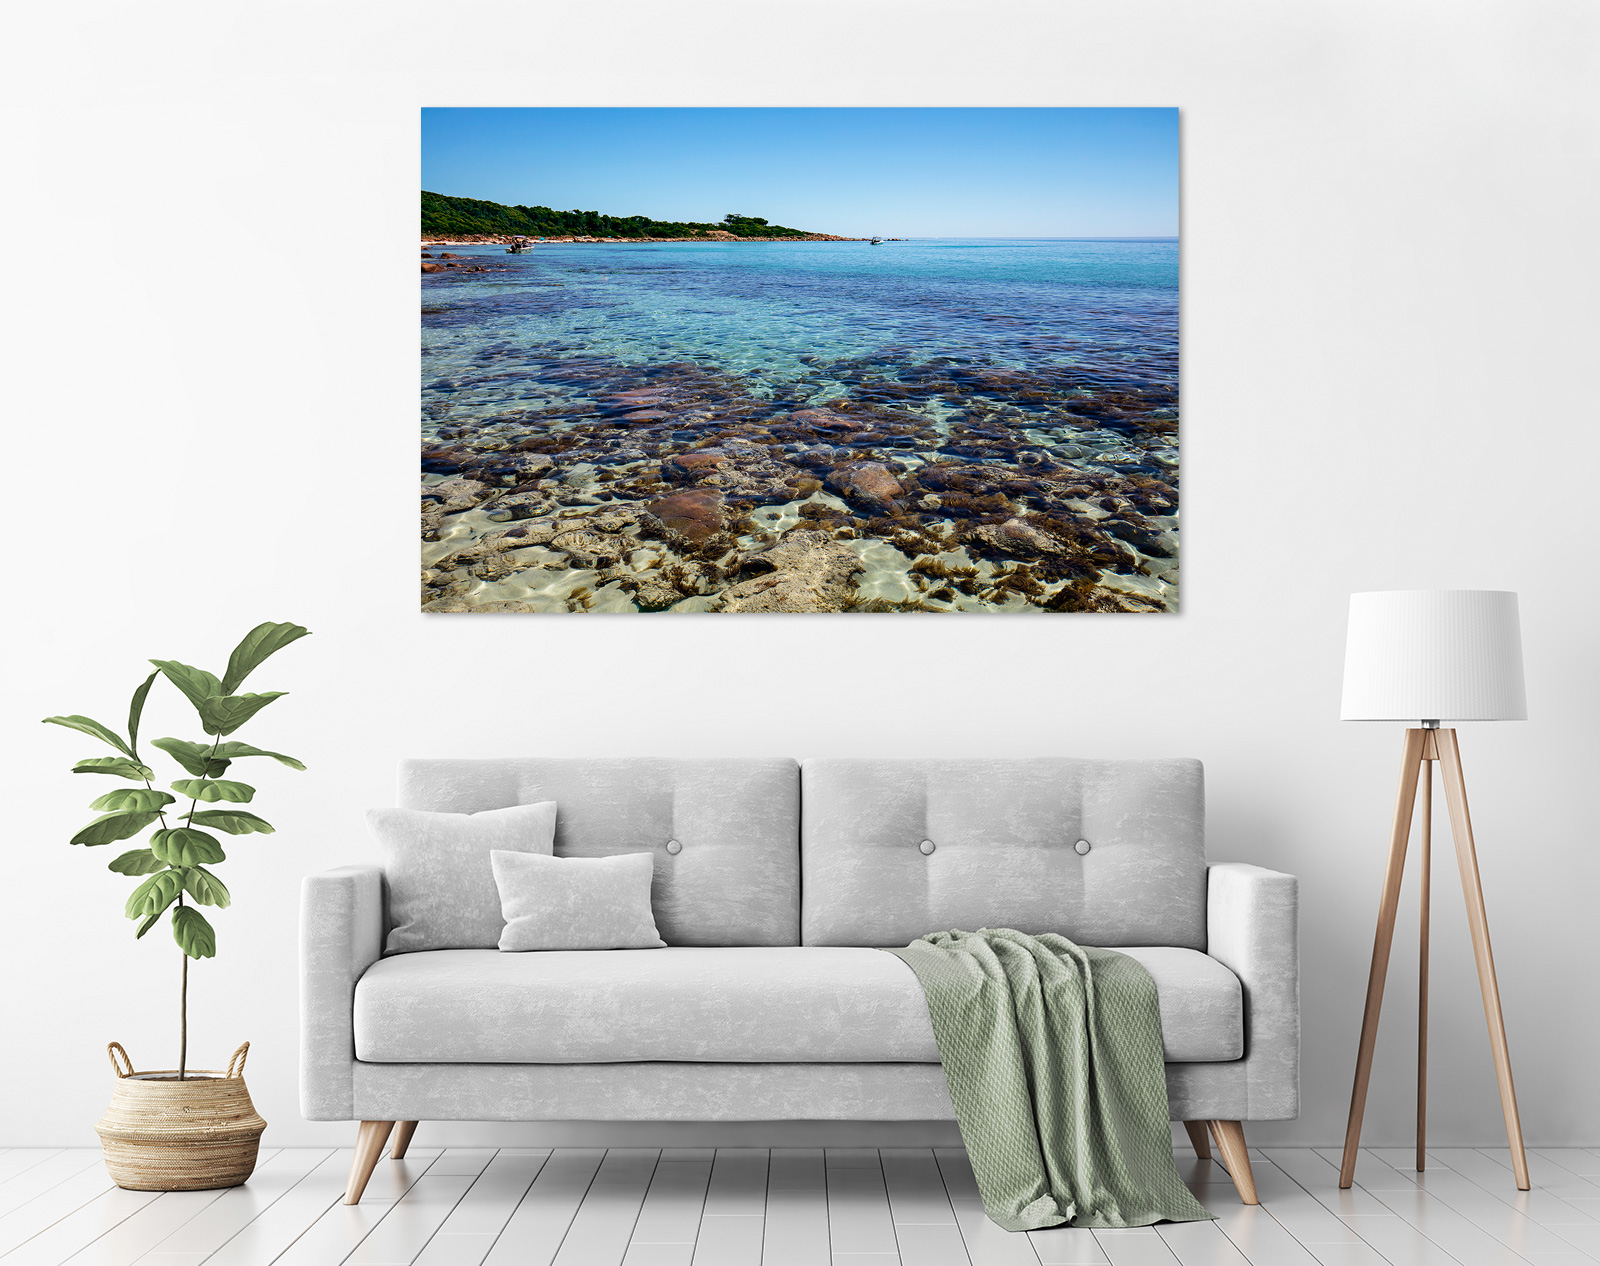 Jason Mazur - 'Meelup Coastline, Dunsborough 012' in a room